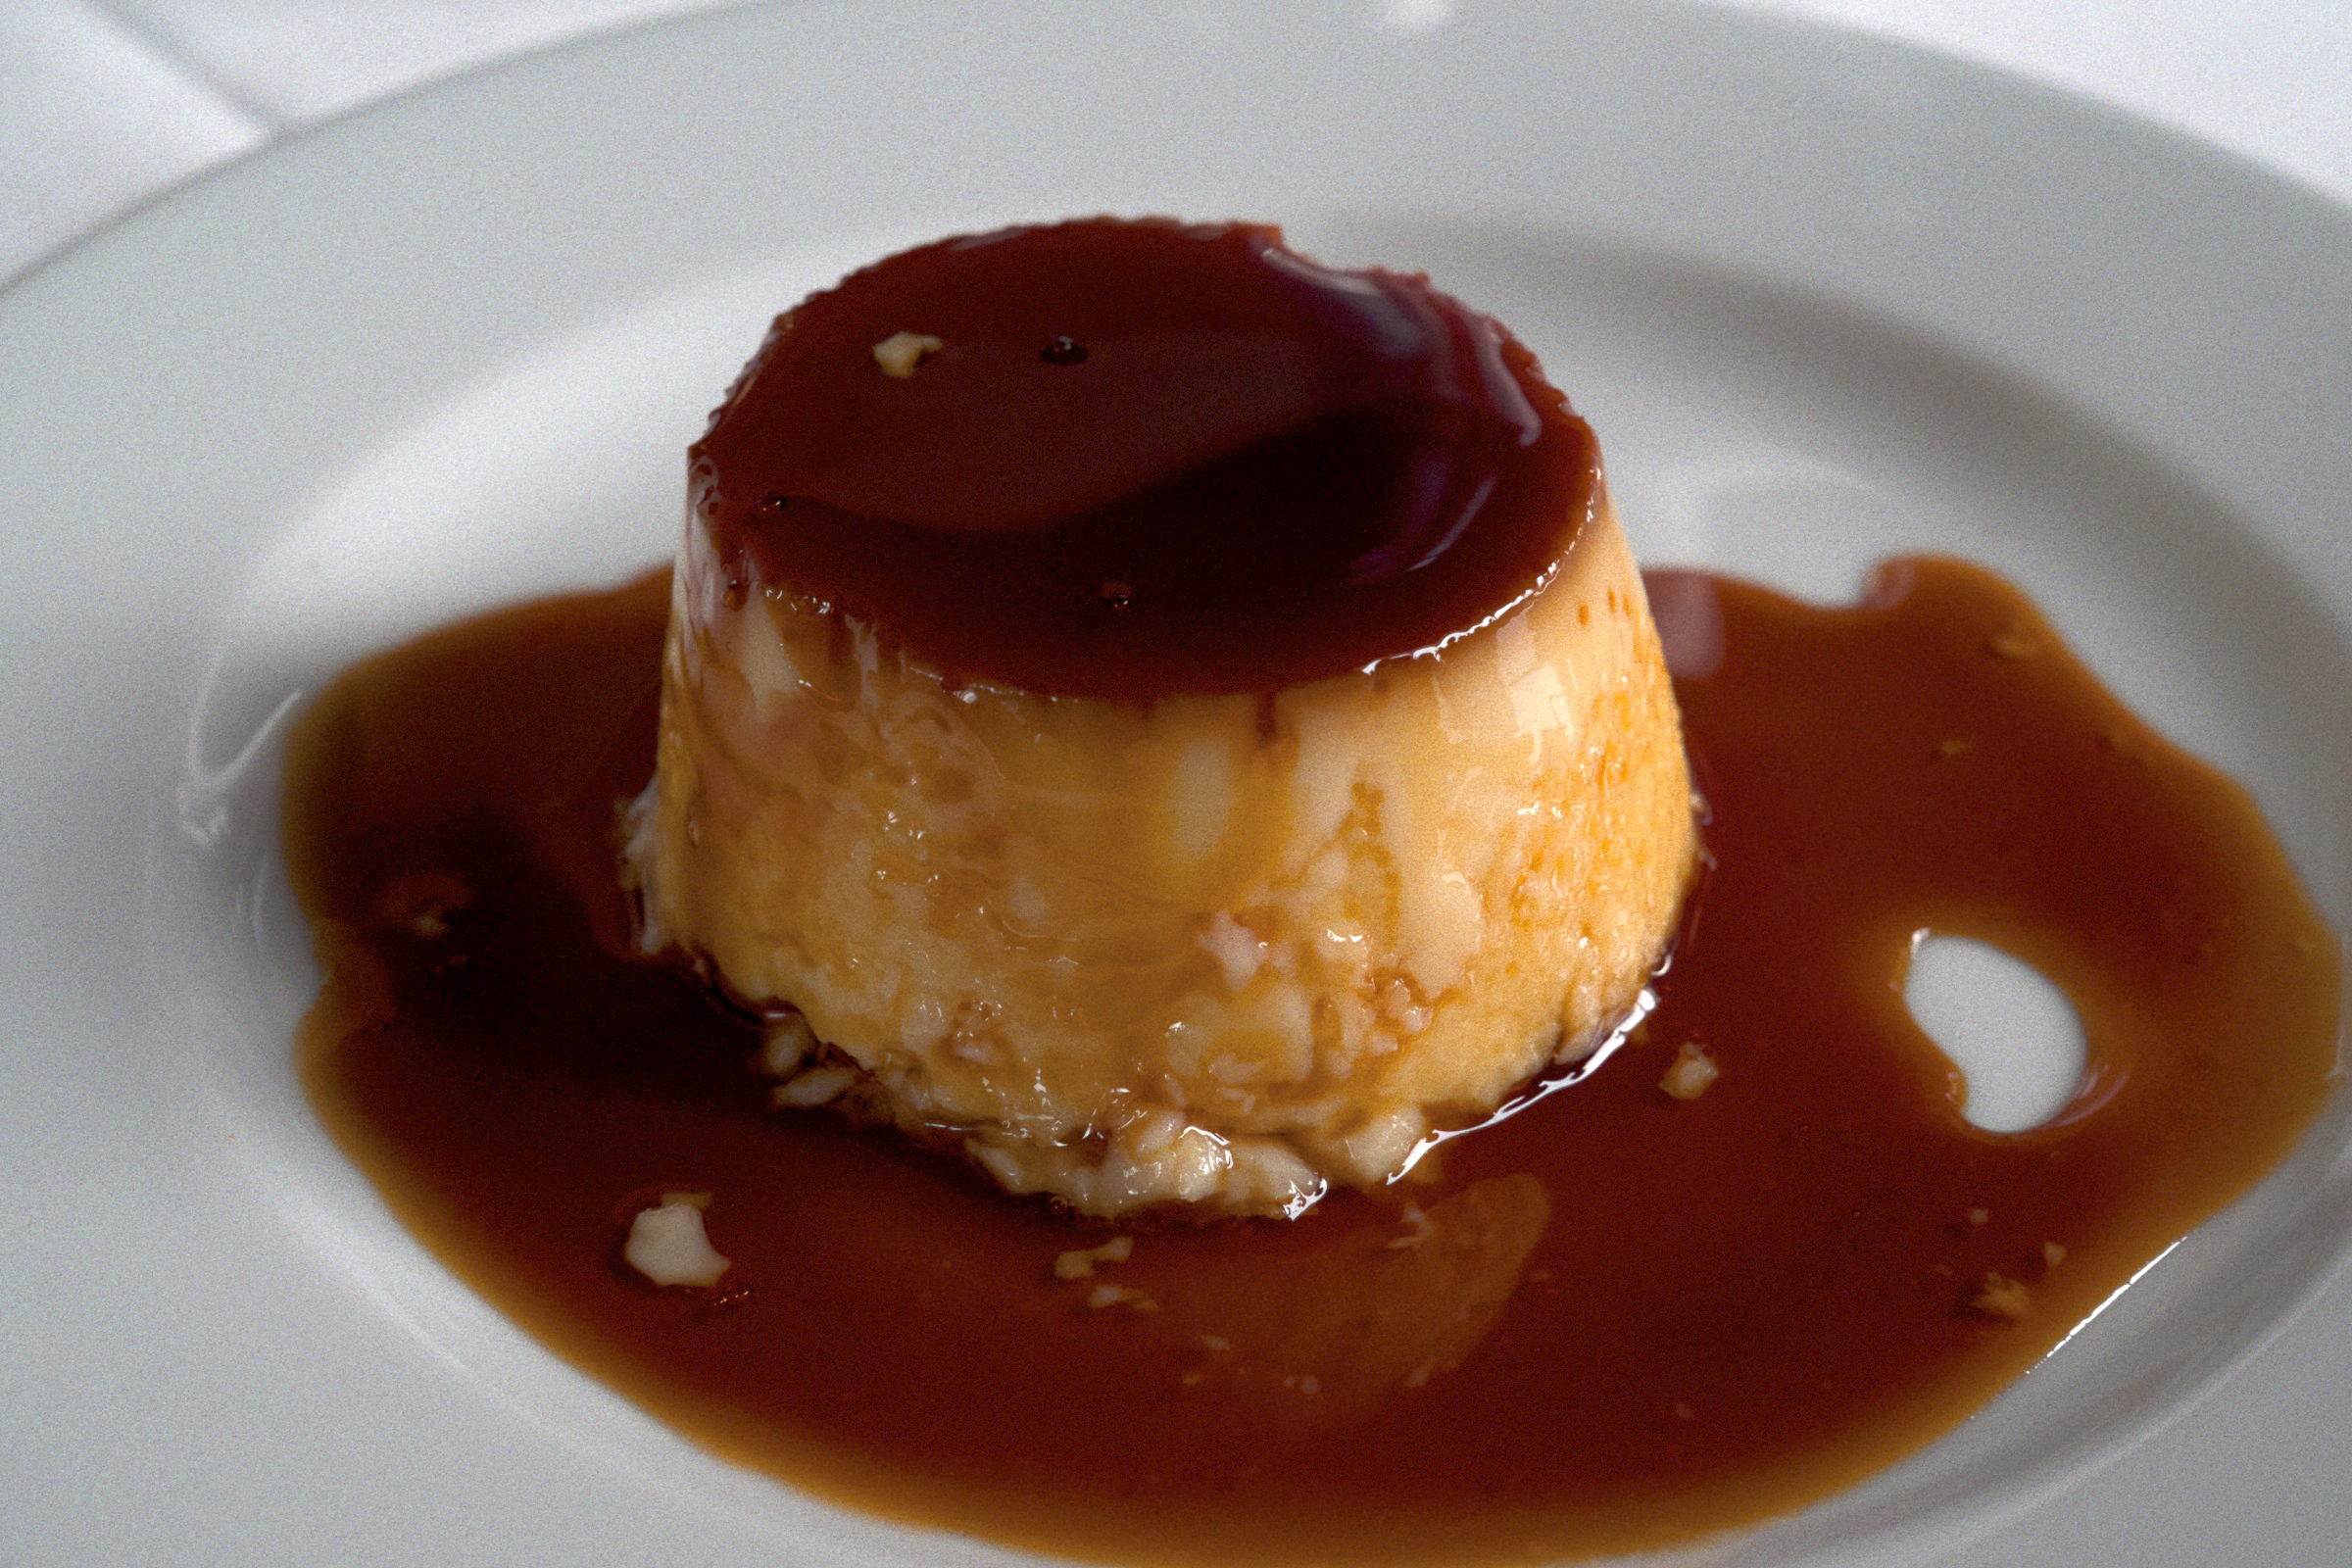 Spanish flan. (Photo by Erik Campo via flickr.com)